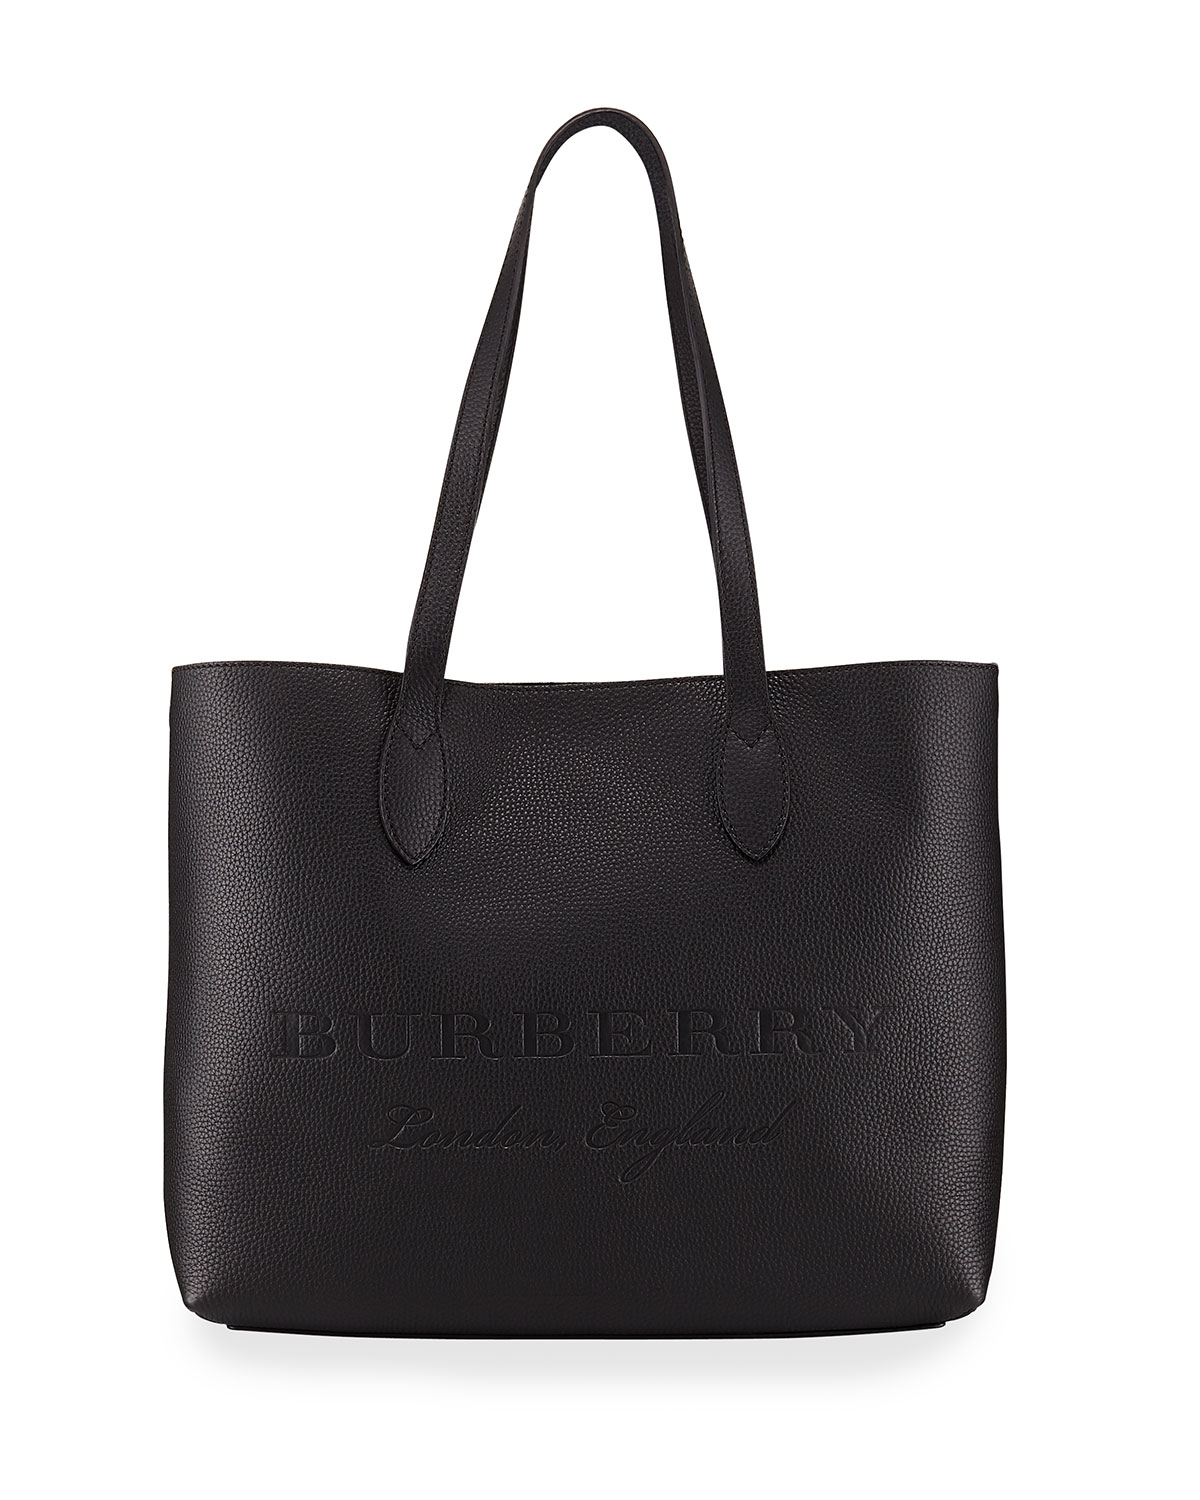 a0623f6aa0ce Burberry Remington Large Soft Grain Leather Shoulder Tote Bag ...